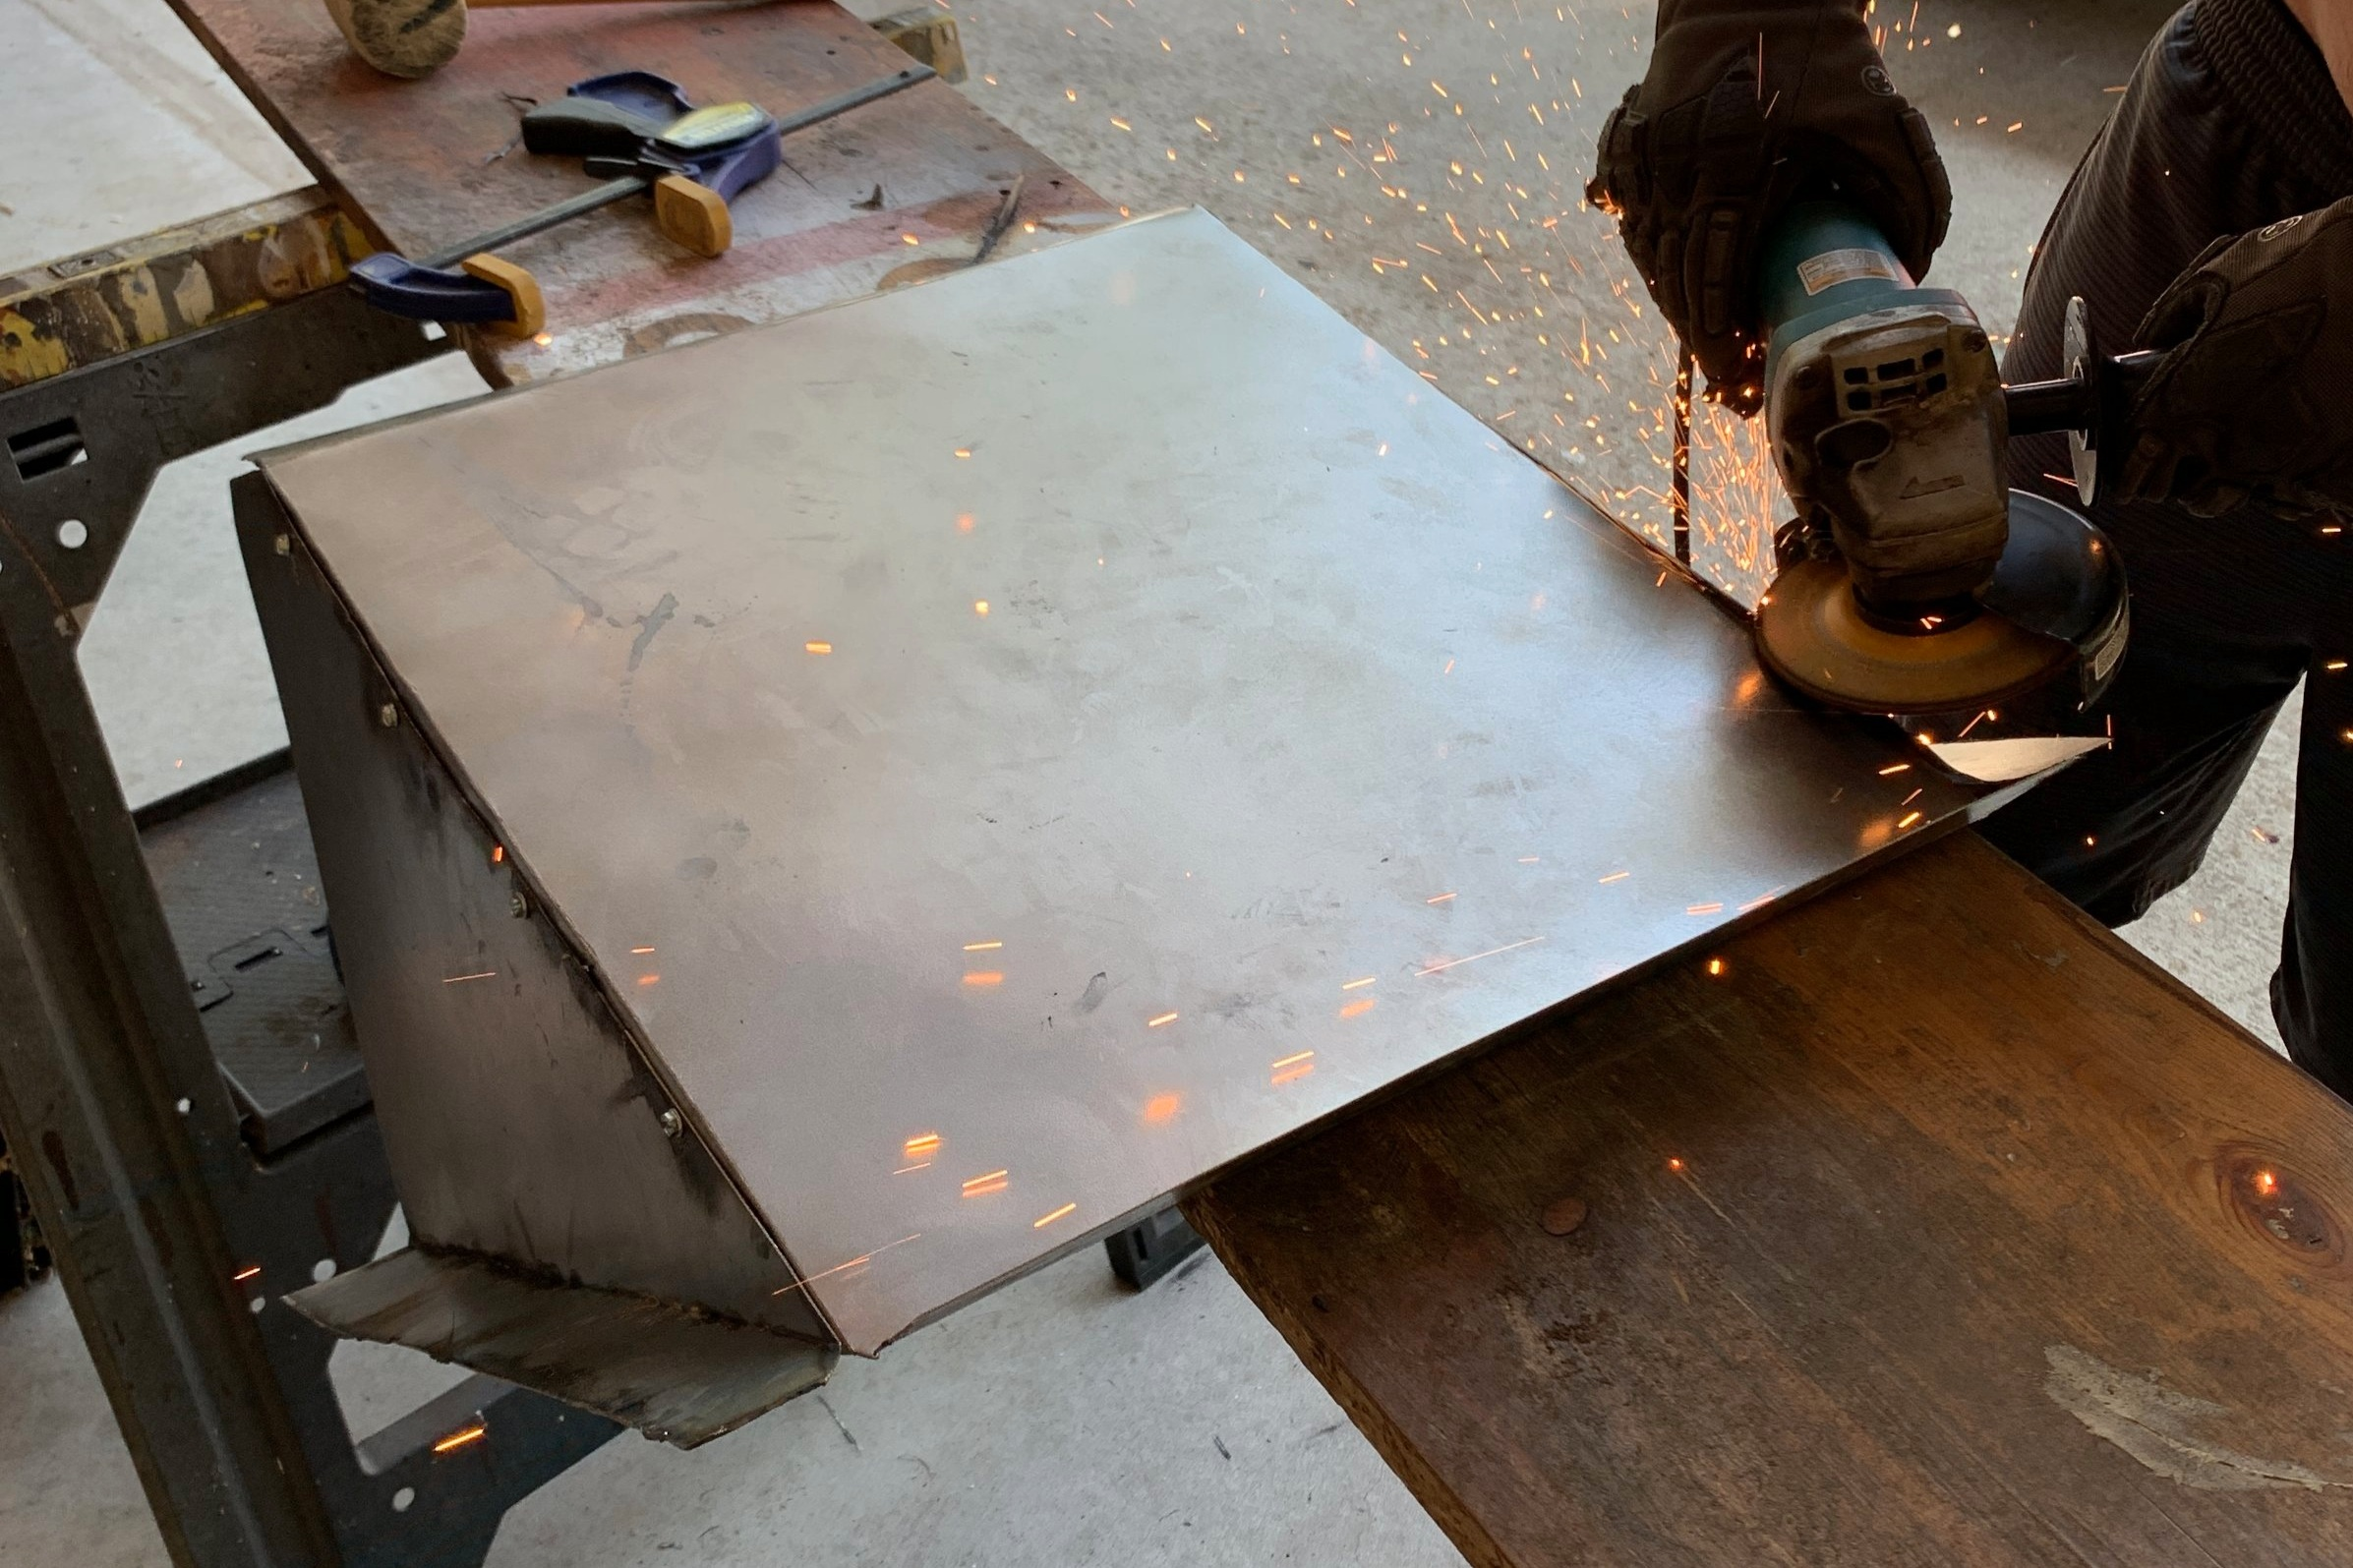 Grinding off the excess metal to smooth the edge of our duct.